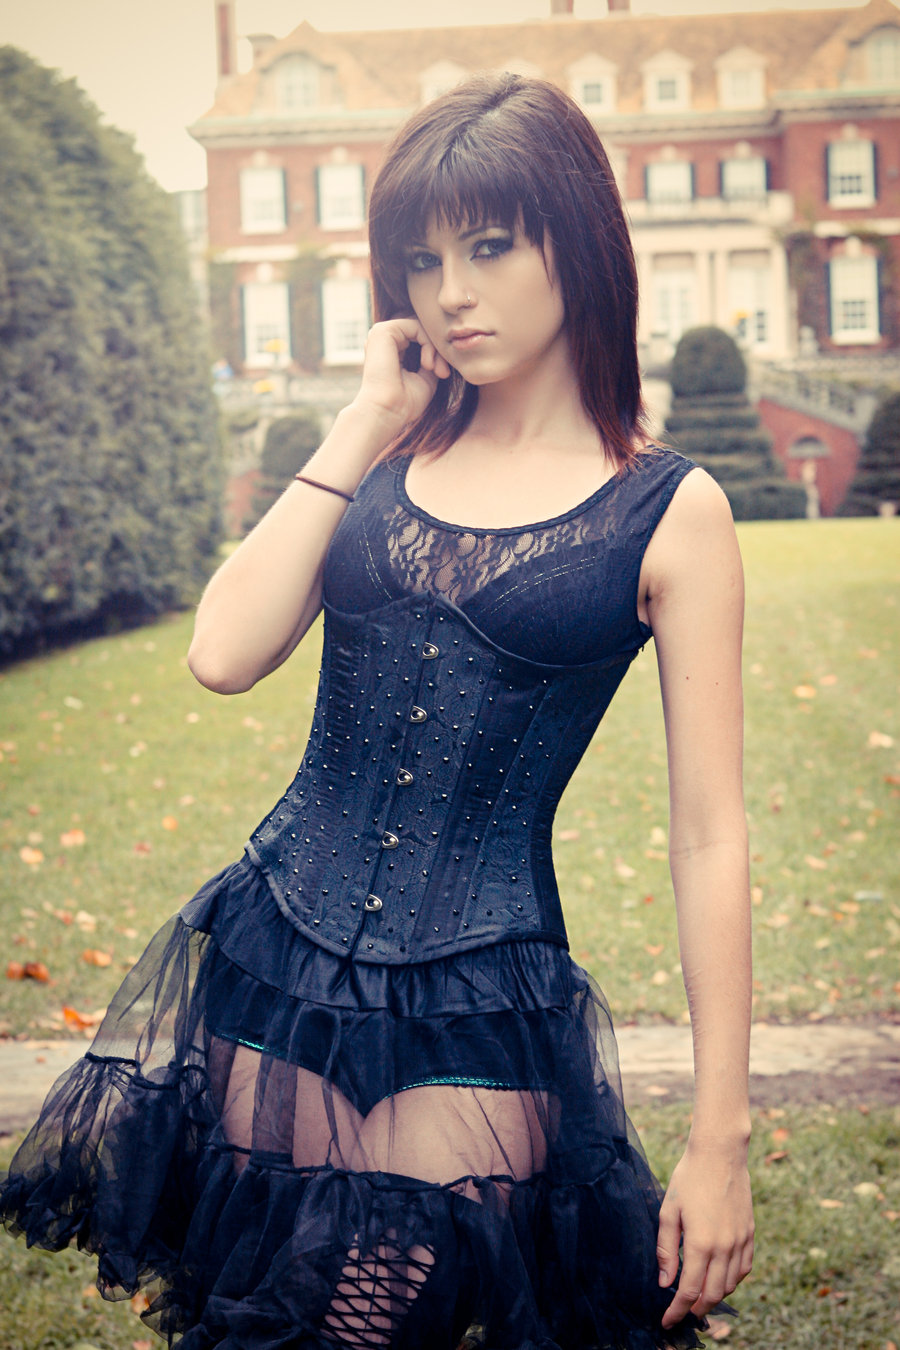 Amazing lace in this amazing pic